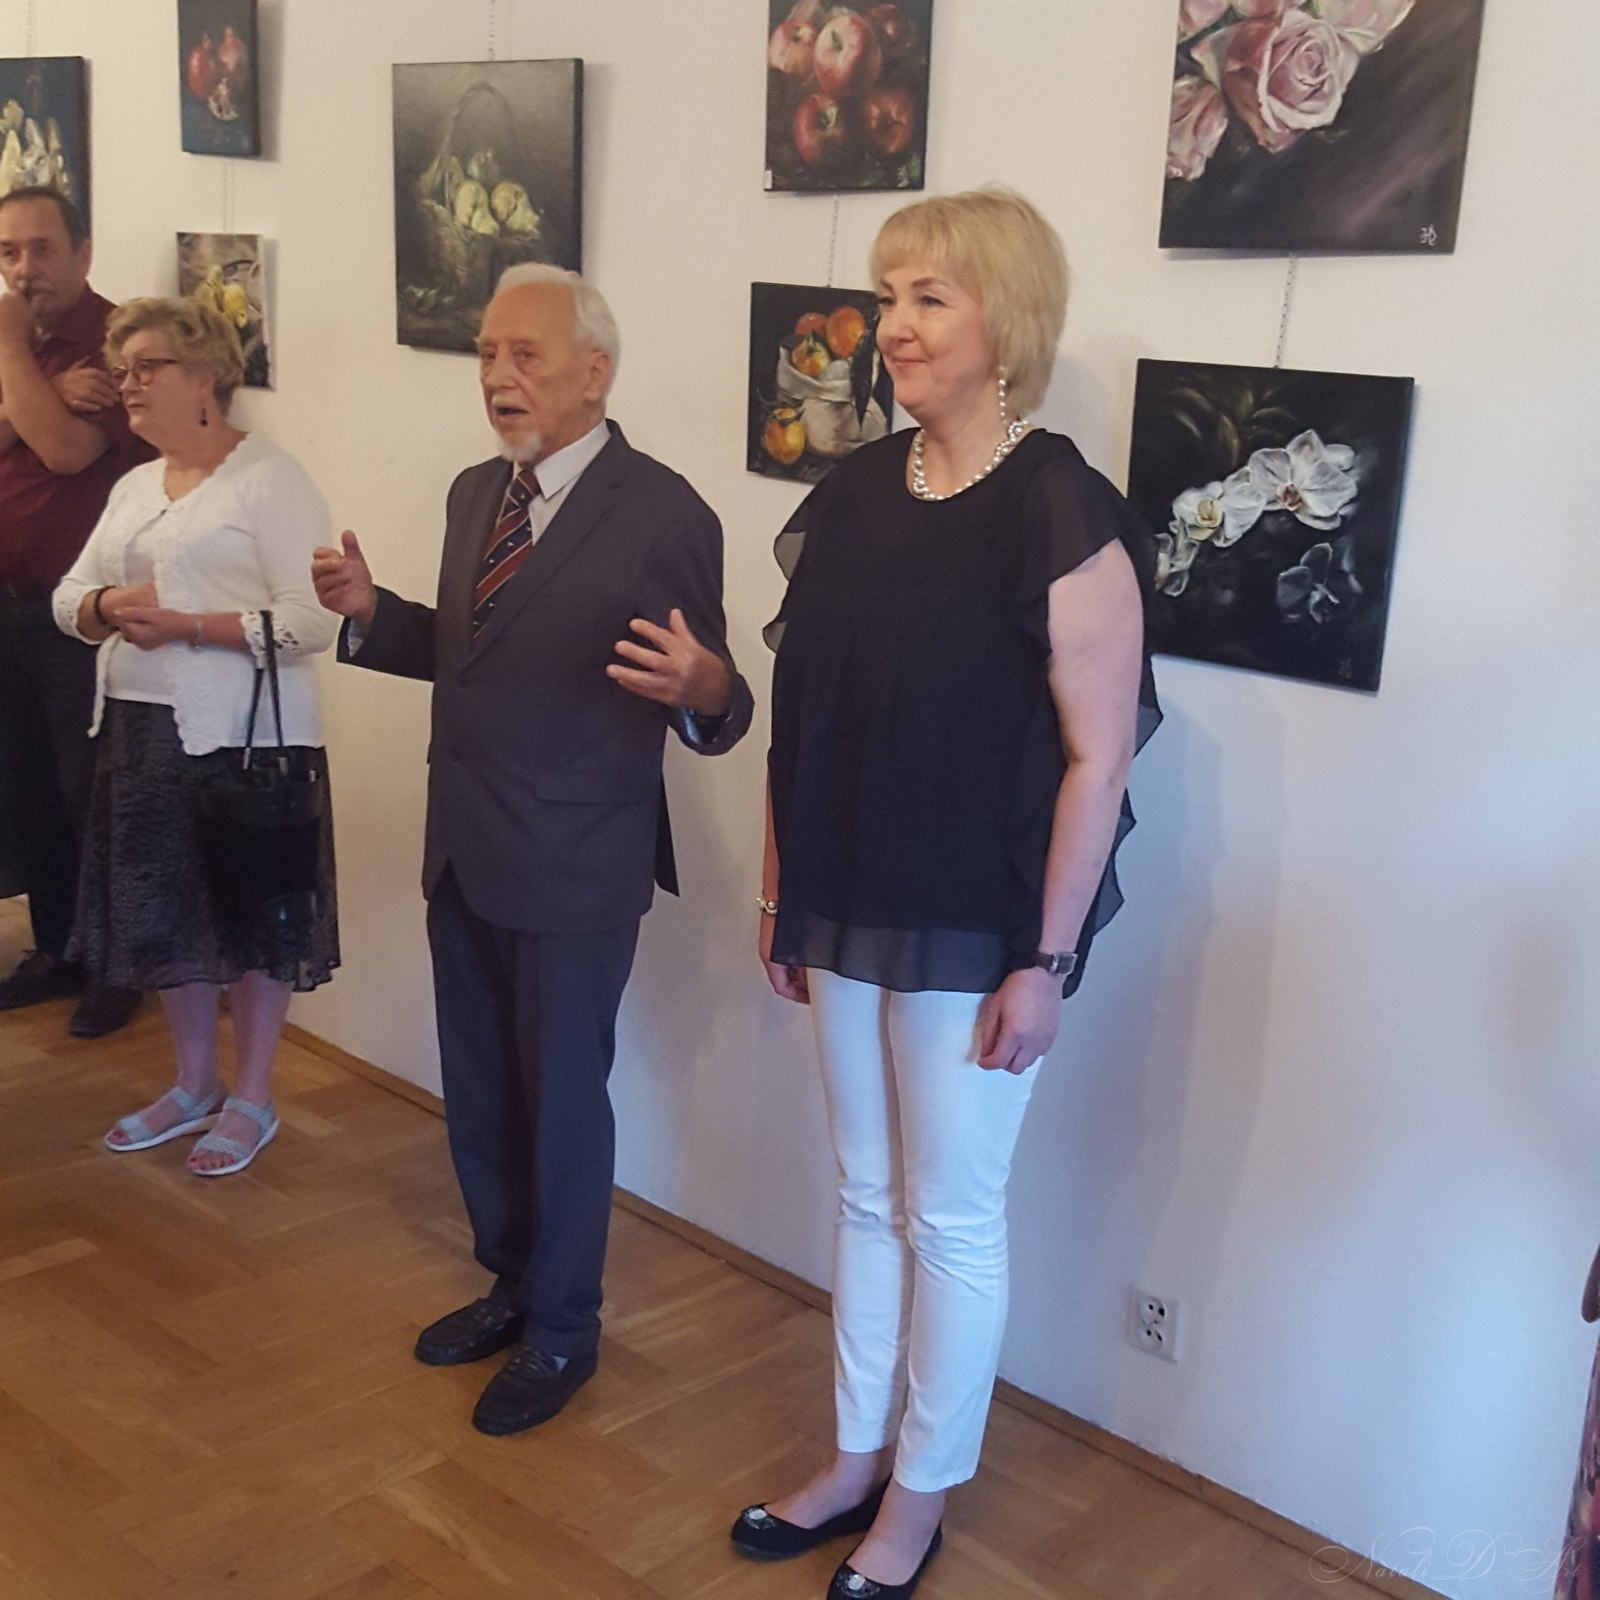 Opening of my exhibition in Poland,the city of Pulawy